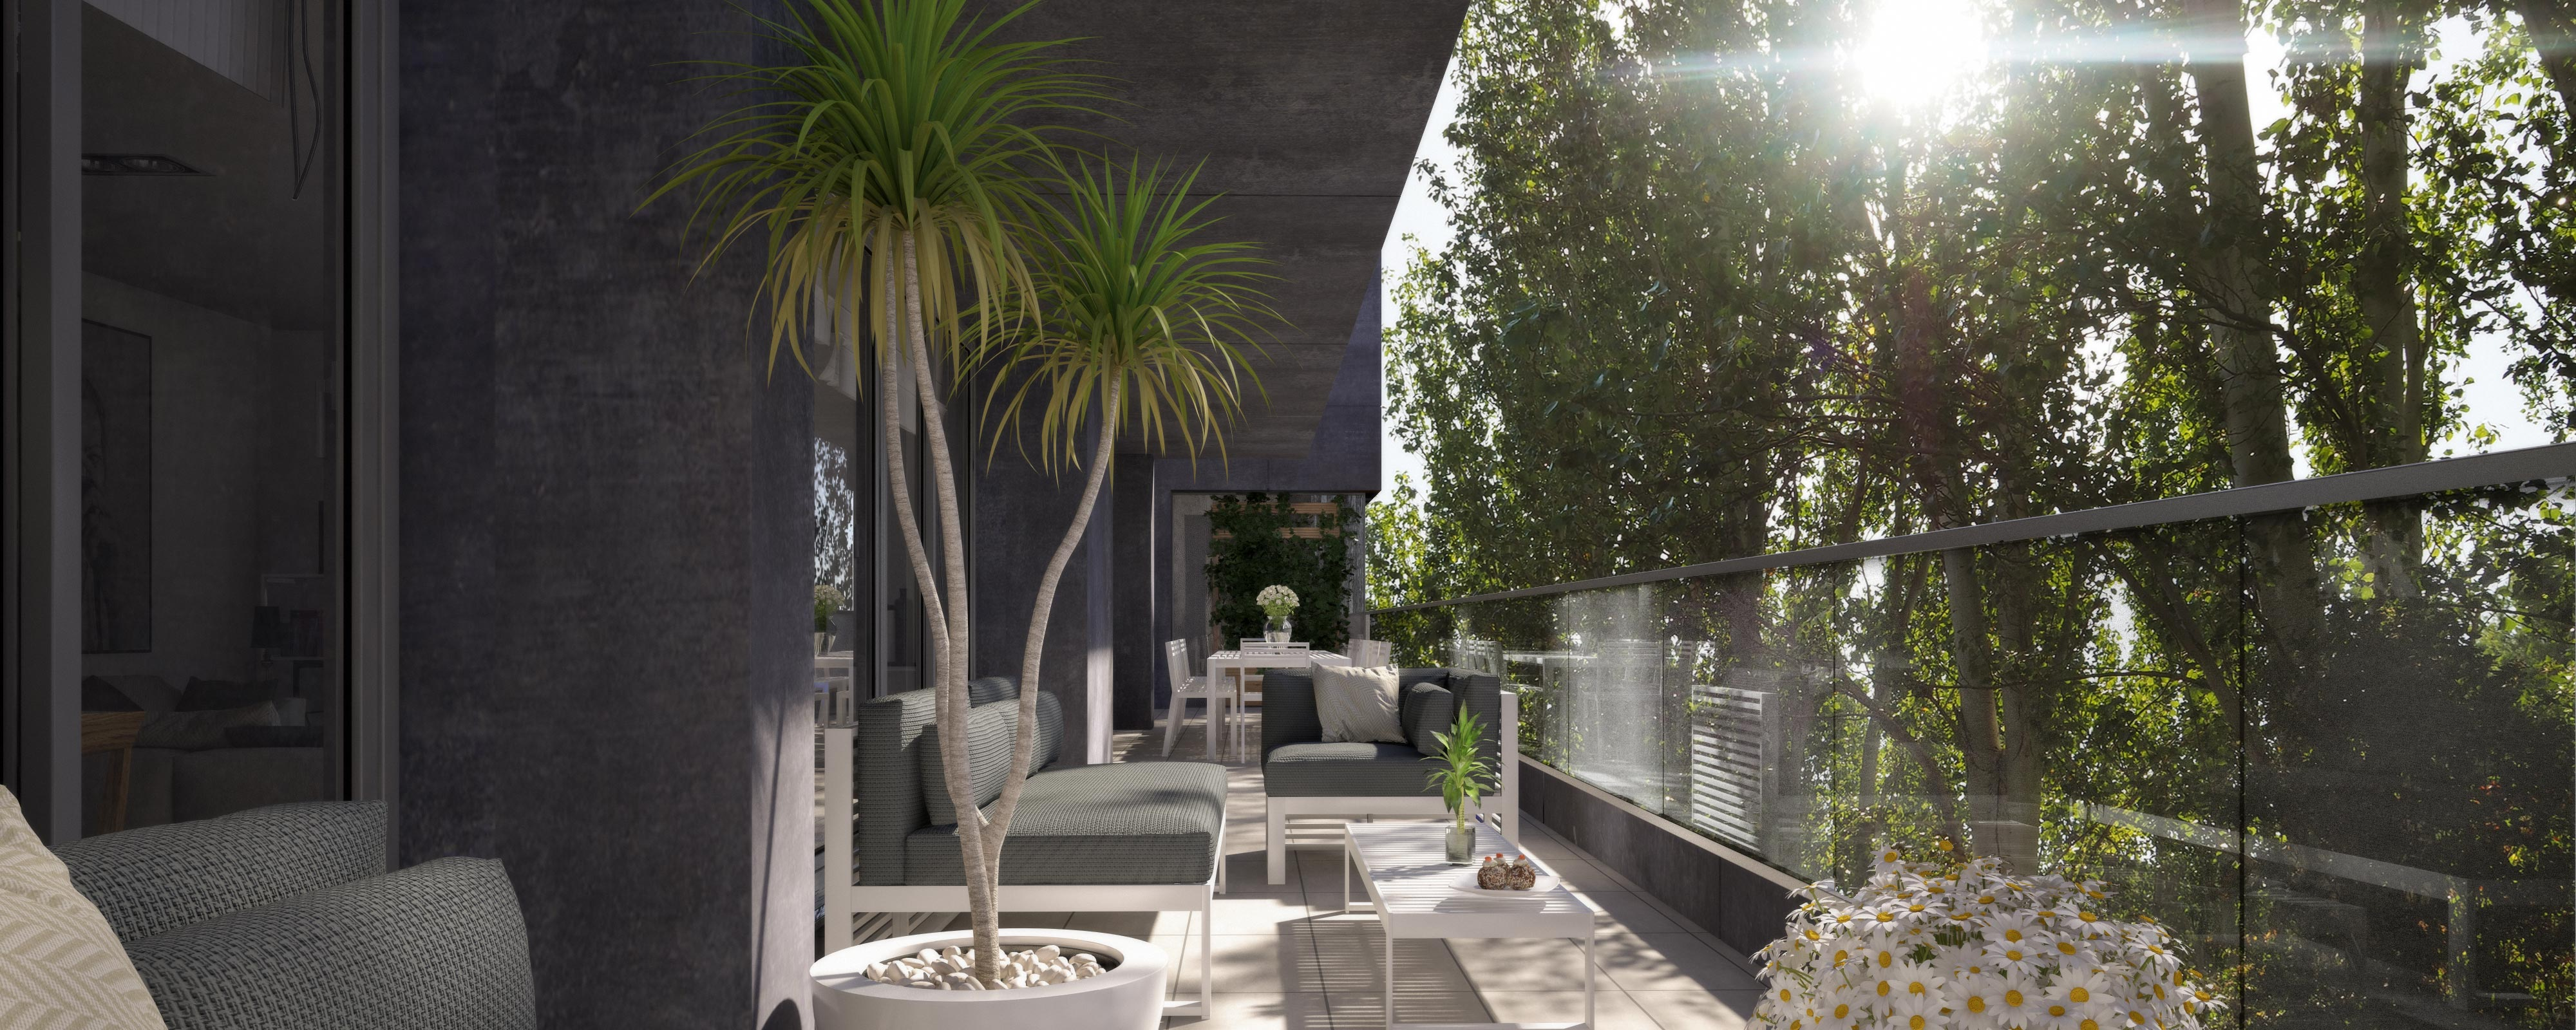 render exterior terrace view of Sausalito residential by GAYARRE infografia